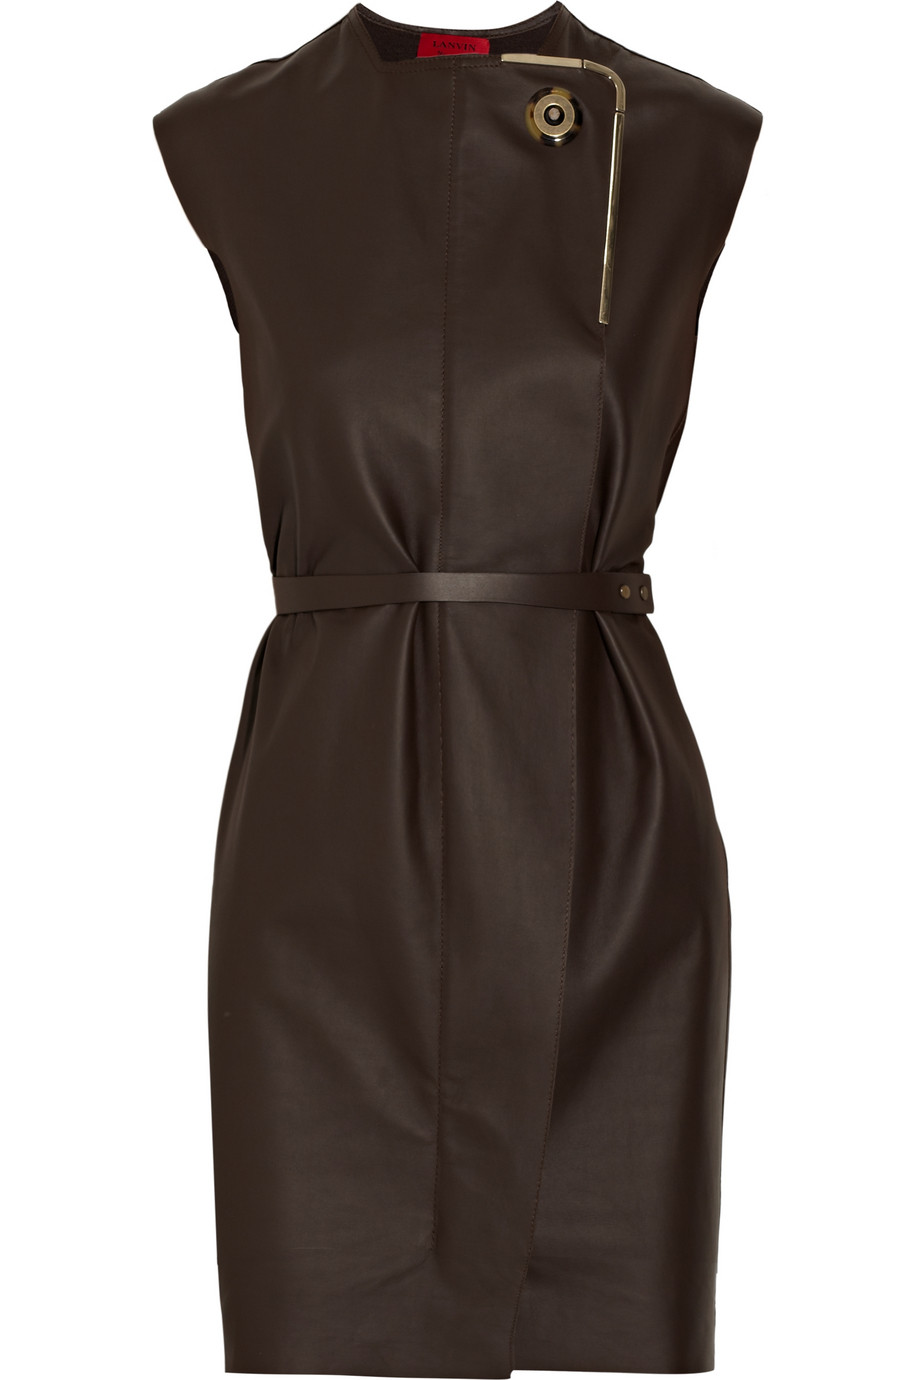 Lyst Lanvin Belted Leather Dress In Brown